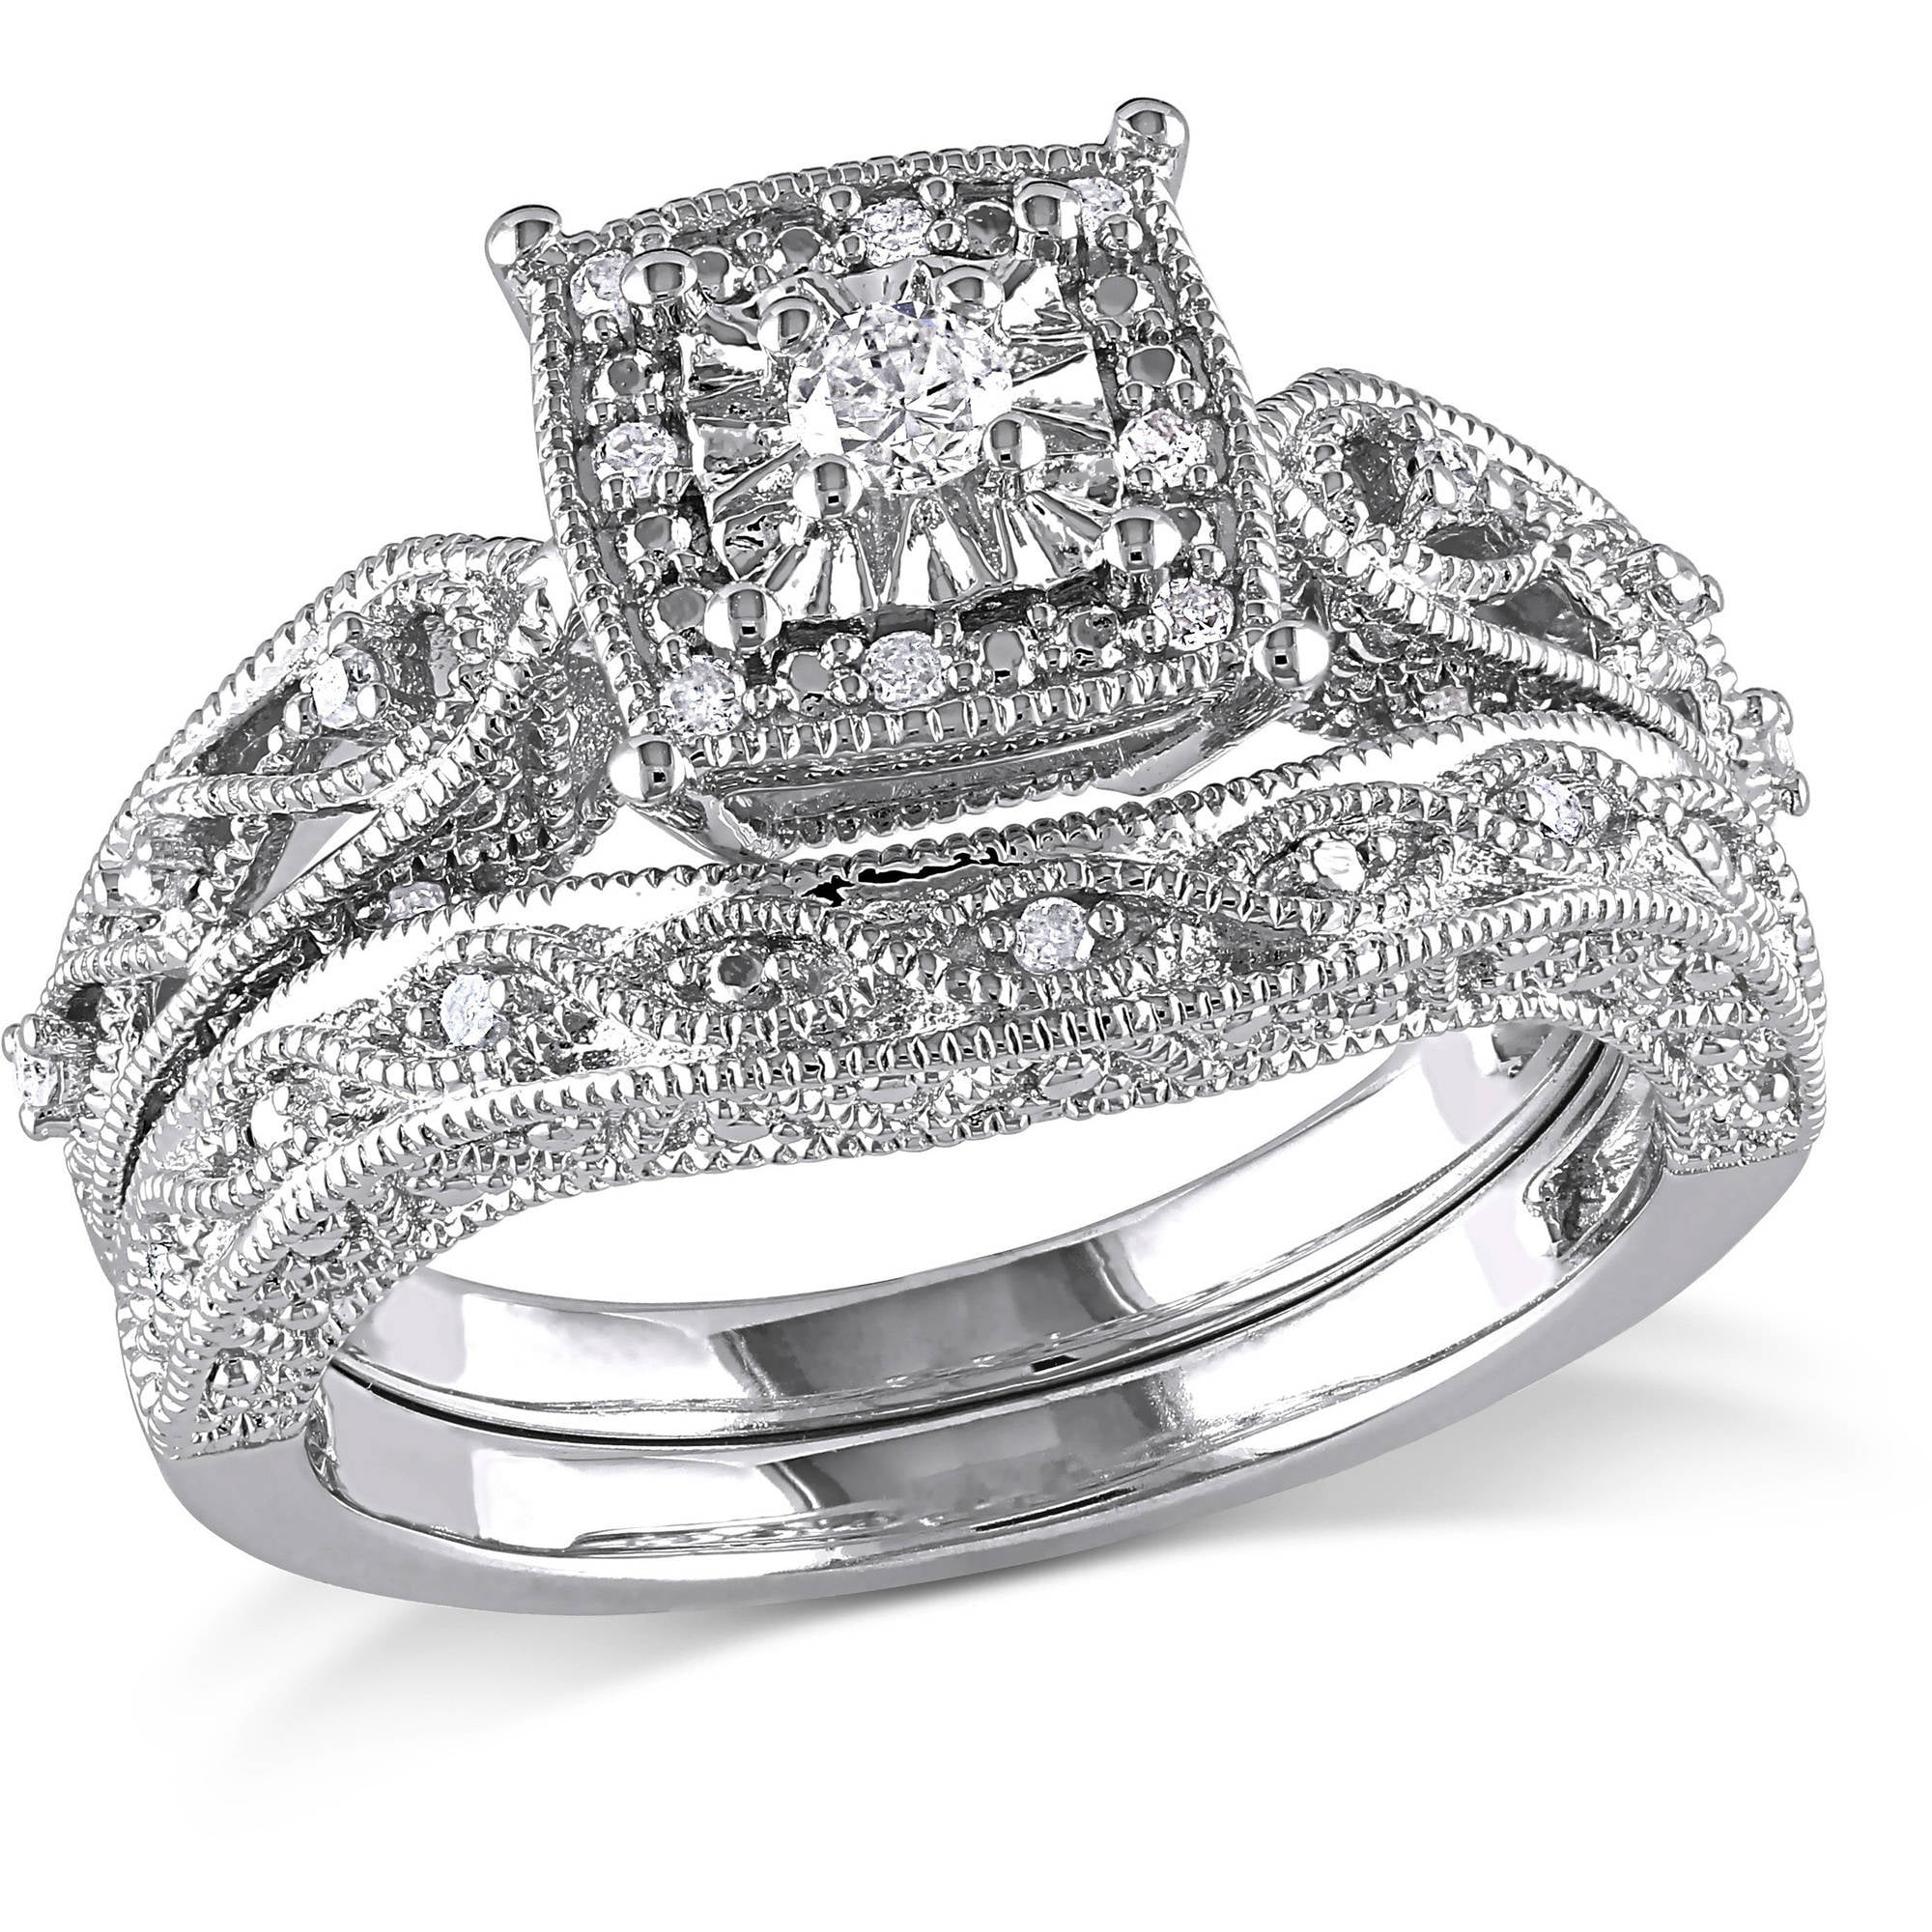 Miabella 1 5 Carat T W Diamond Sterling Silver Halo Bridal Set